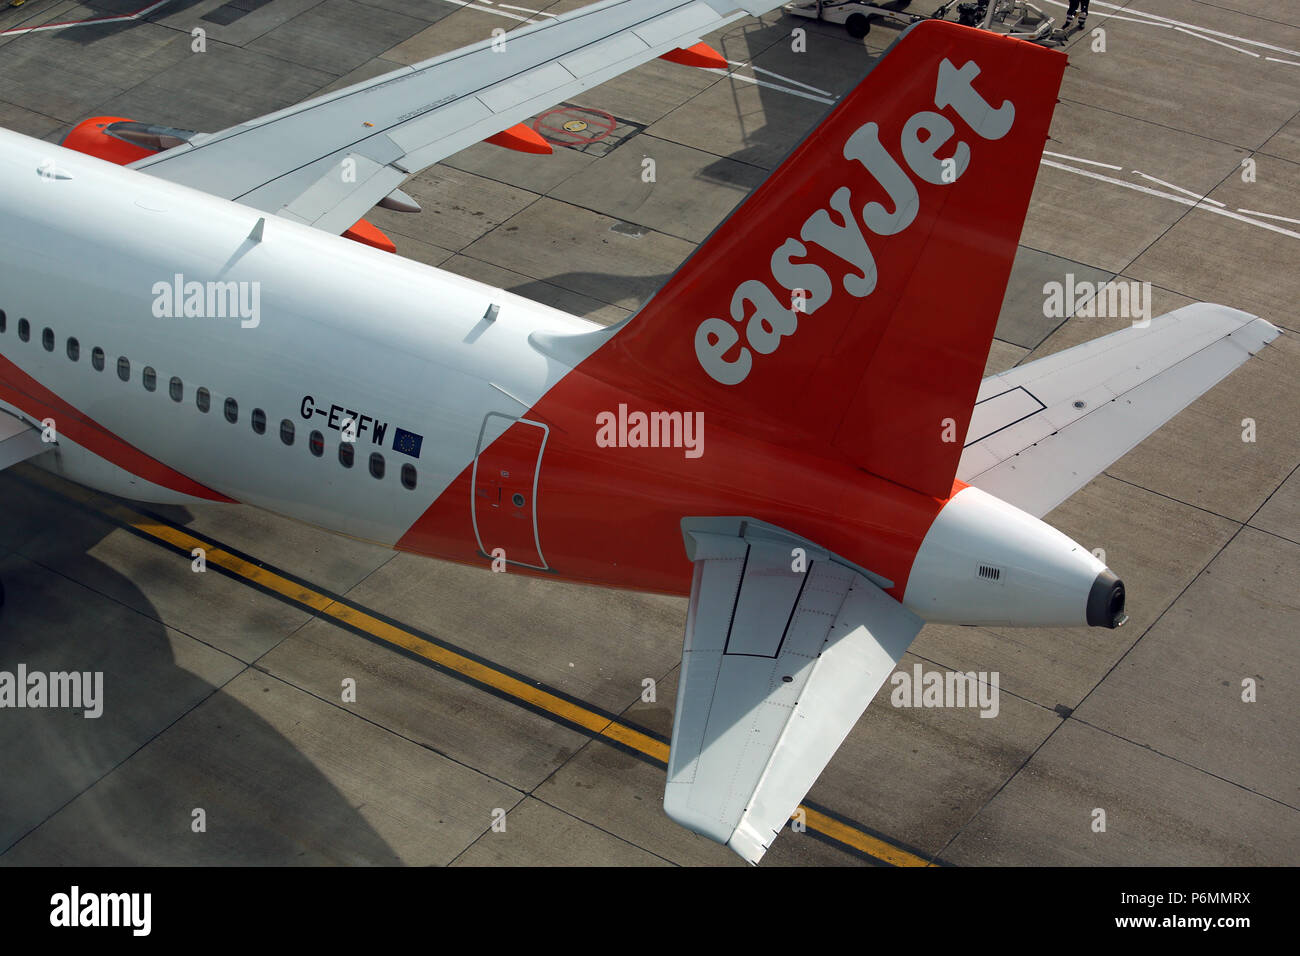 London, United Kingdom, rear wing of Airbus A 319 of airline easyJet - Stock Image